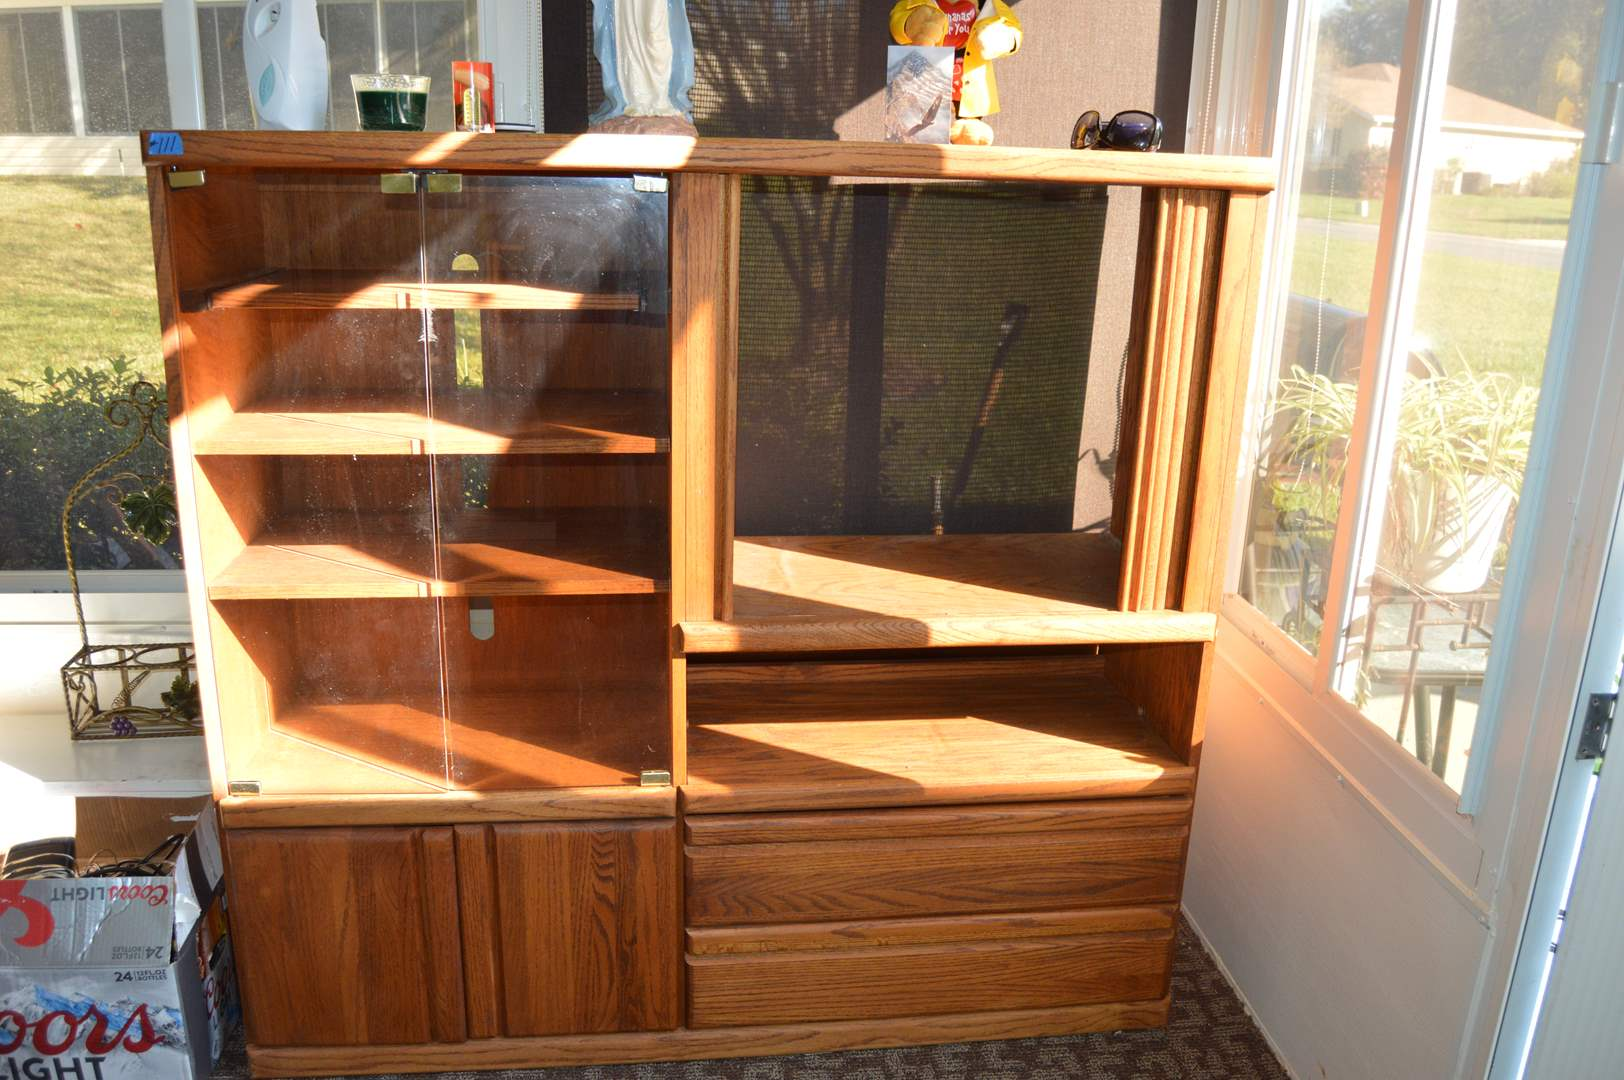 Lot # 111 Wood entertainment center with glass door display & storage (main image)